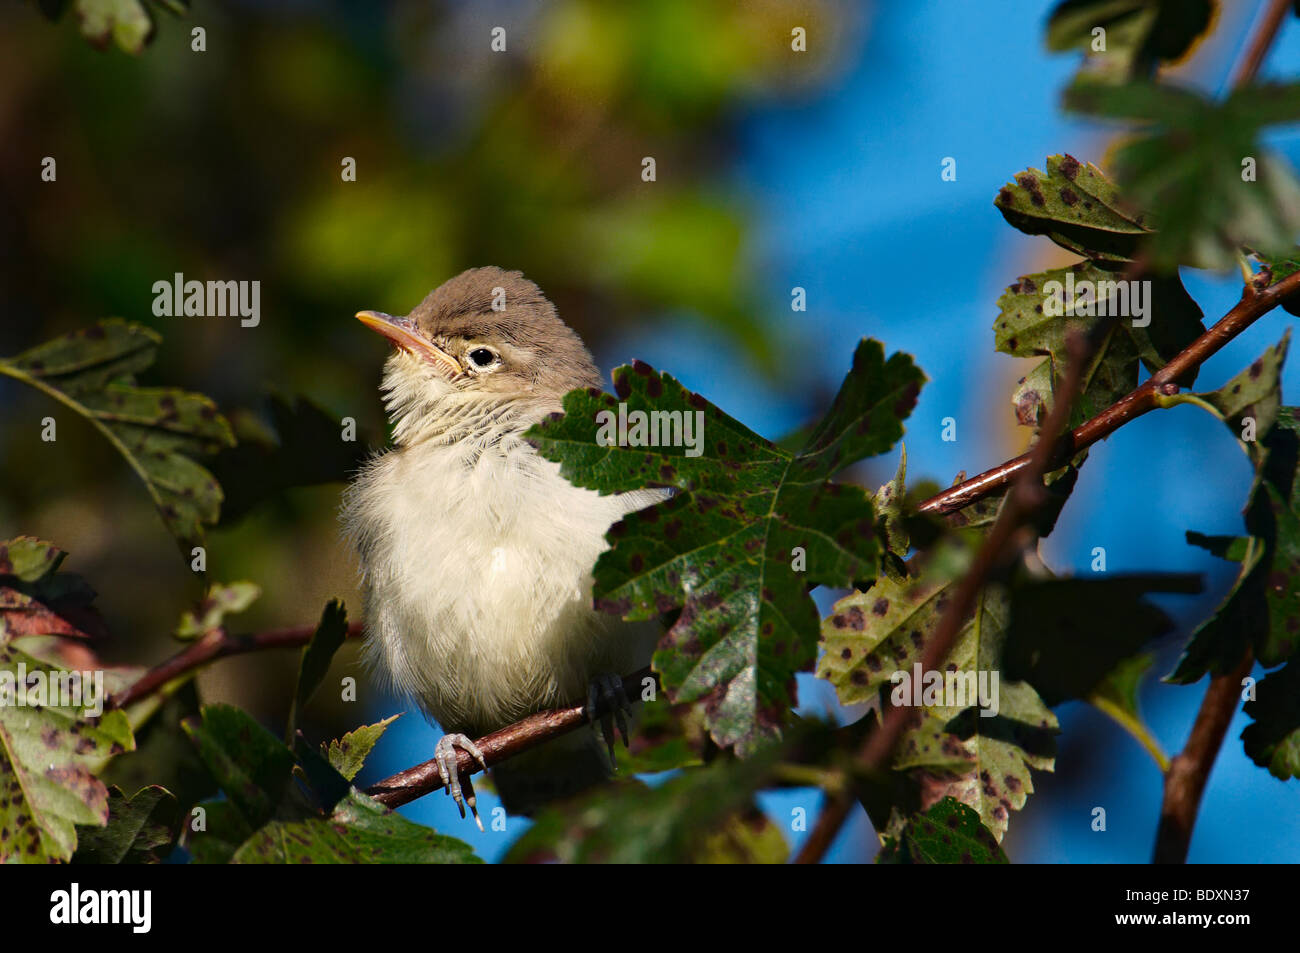 Willow warbler (Phylloscopus trochilus) - Stock Image